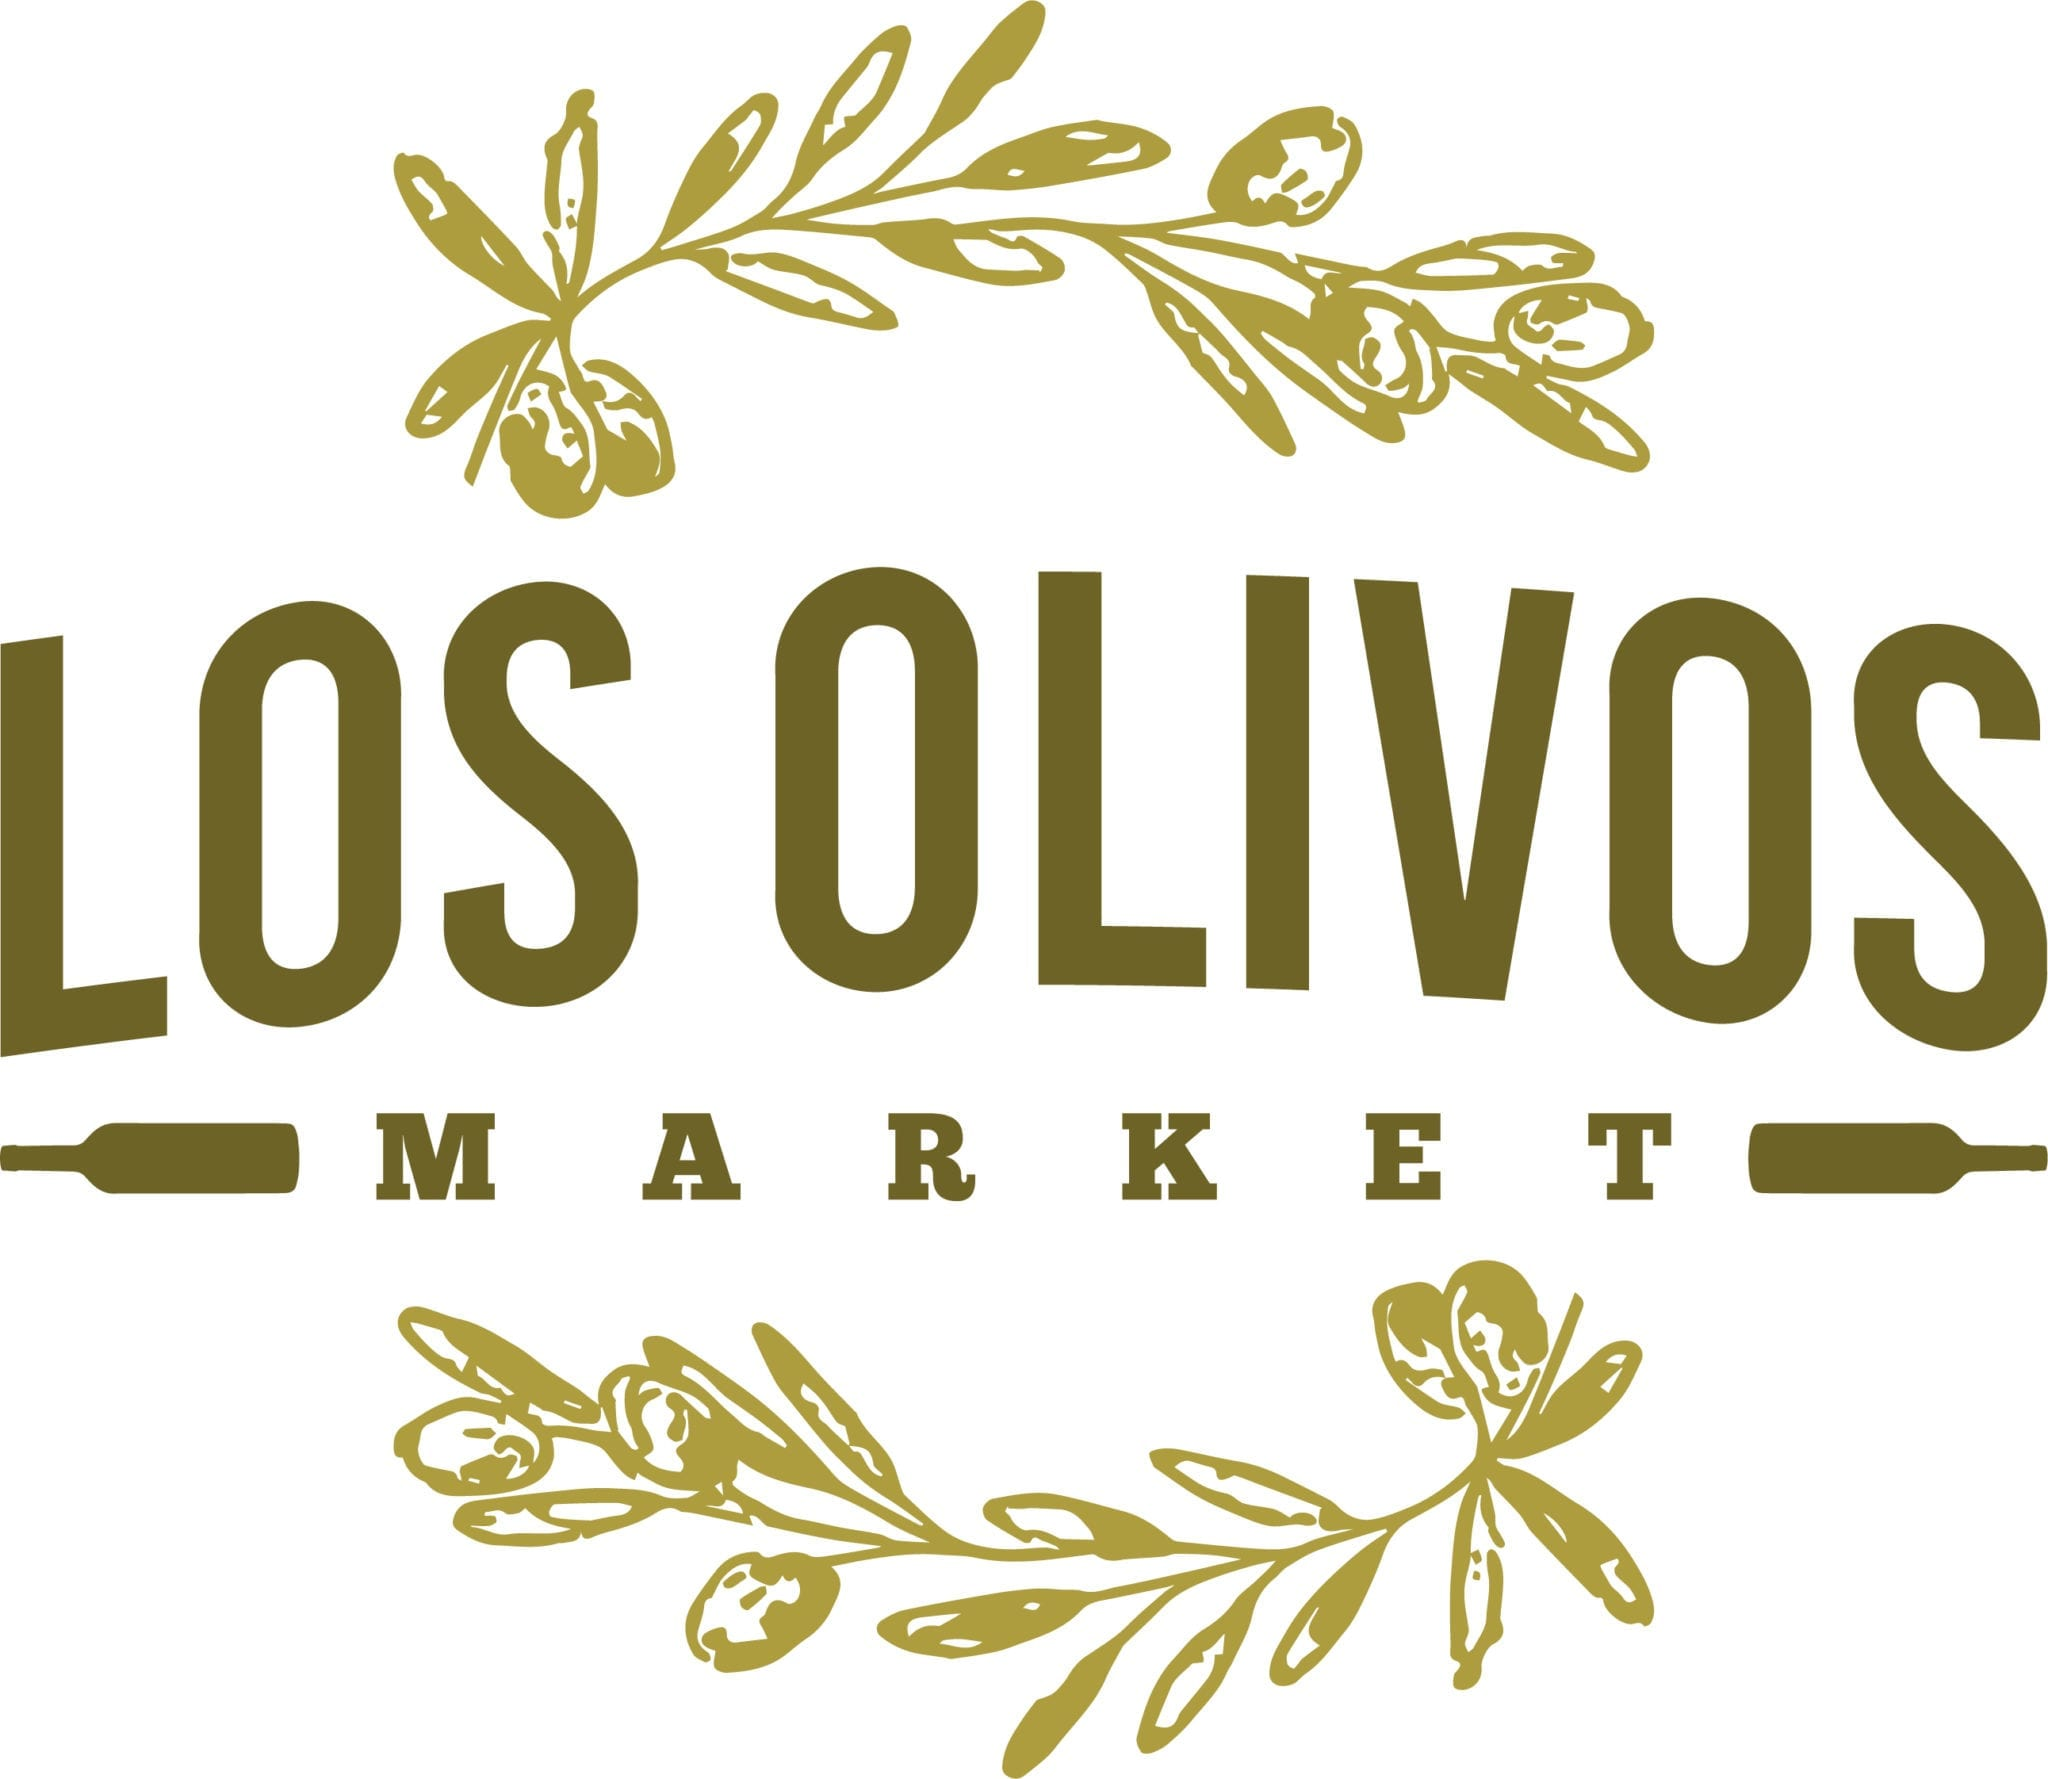 The Texas Hill Country evokes a sense of place,wonderment, and family unity. Like the gift of two olive trees given to Grandfather Ramon from our Aunt; Los Olivos is our gift to you. We strive to embrace our heritage by merging our European roots with old fashioned Texas hospitality. This is felt through our collaboration with local farms and producers allowing you to partake in the best that Texas has to offer.